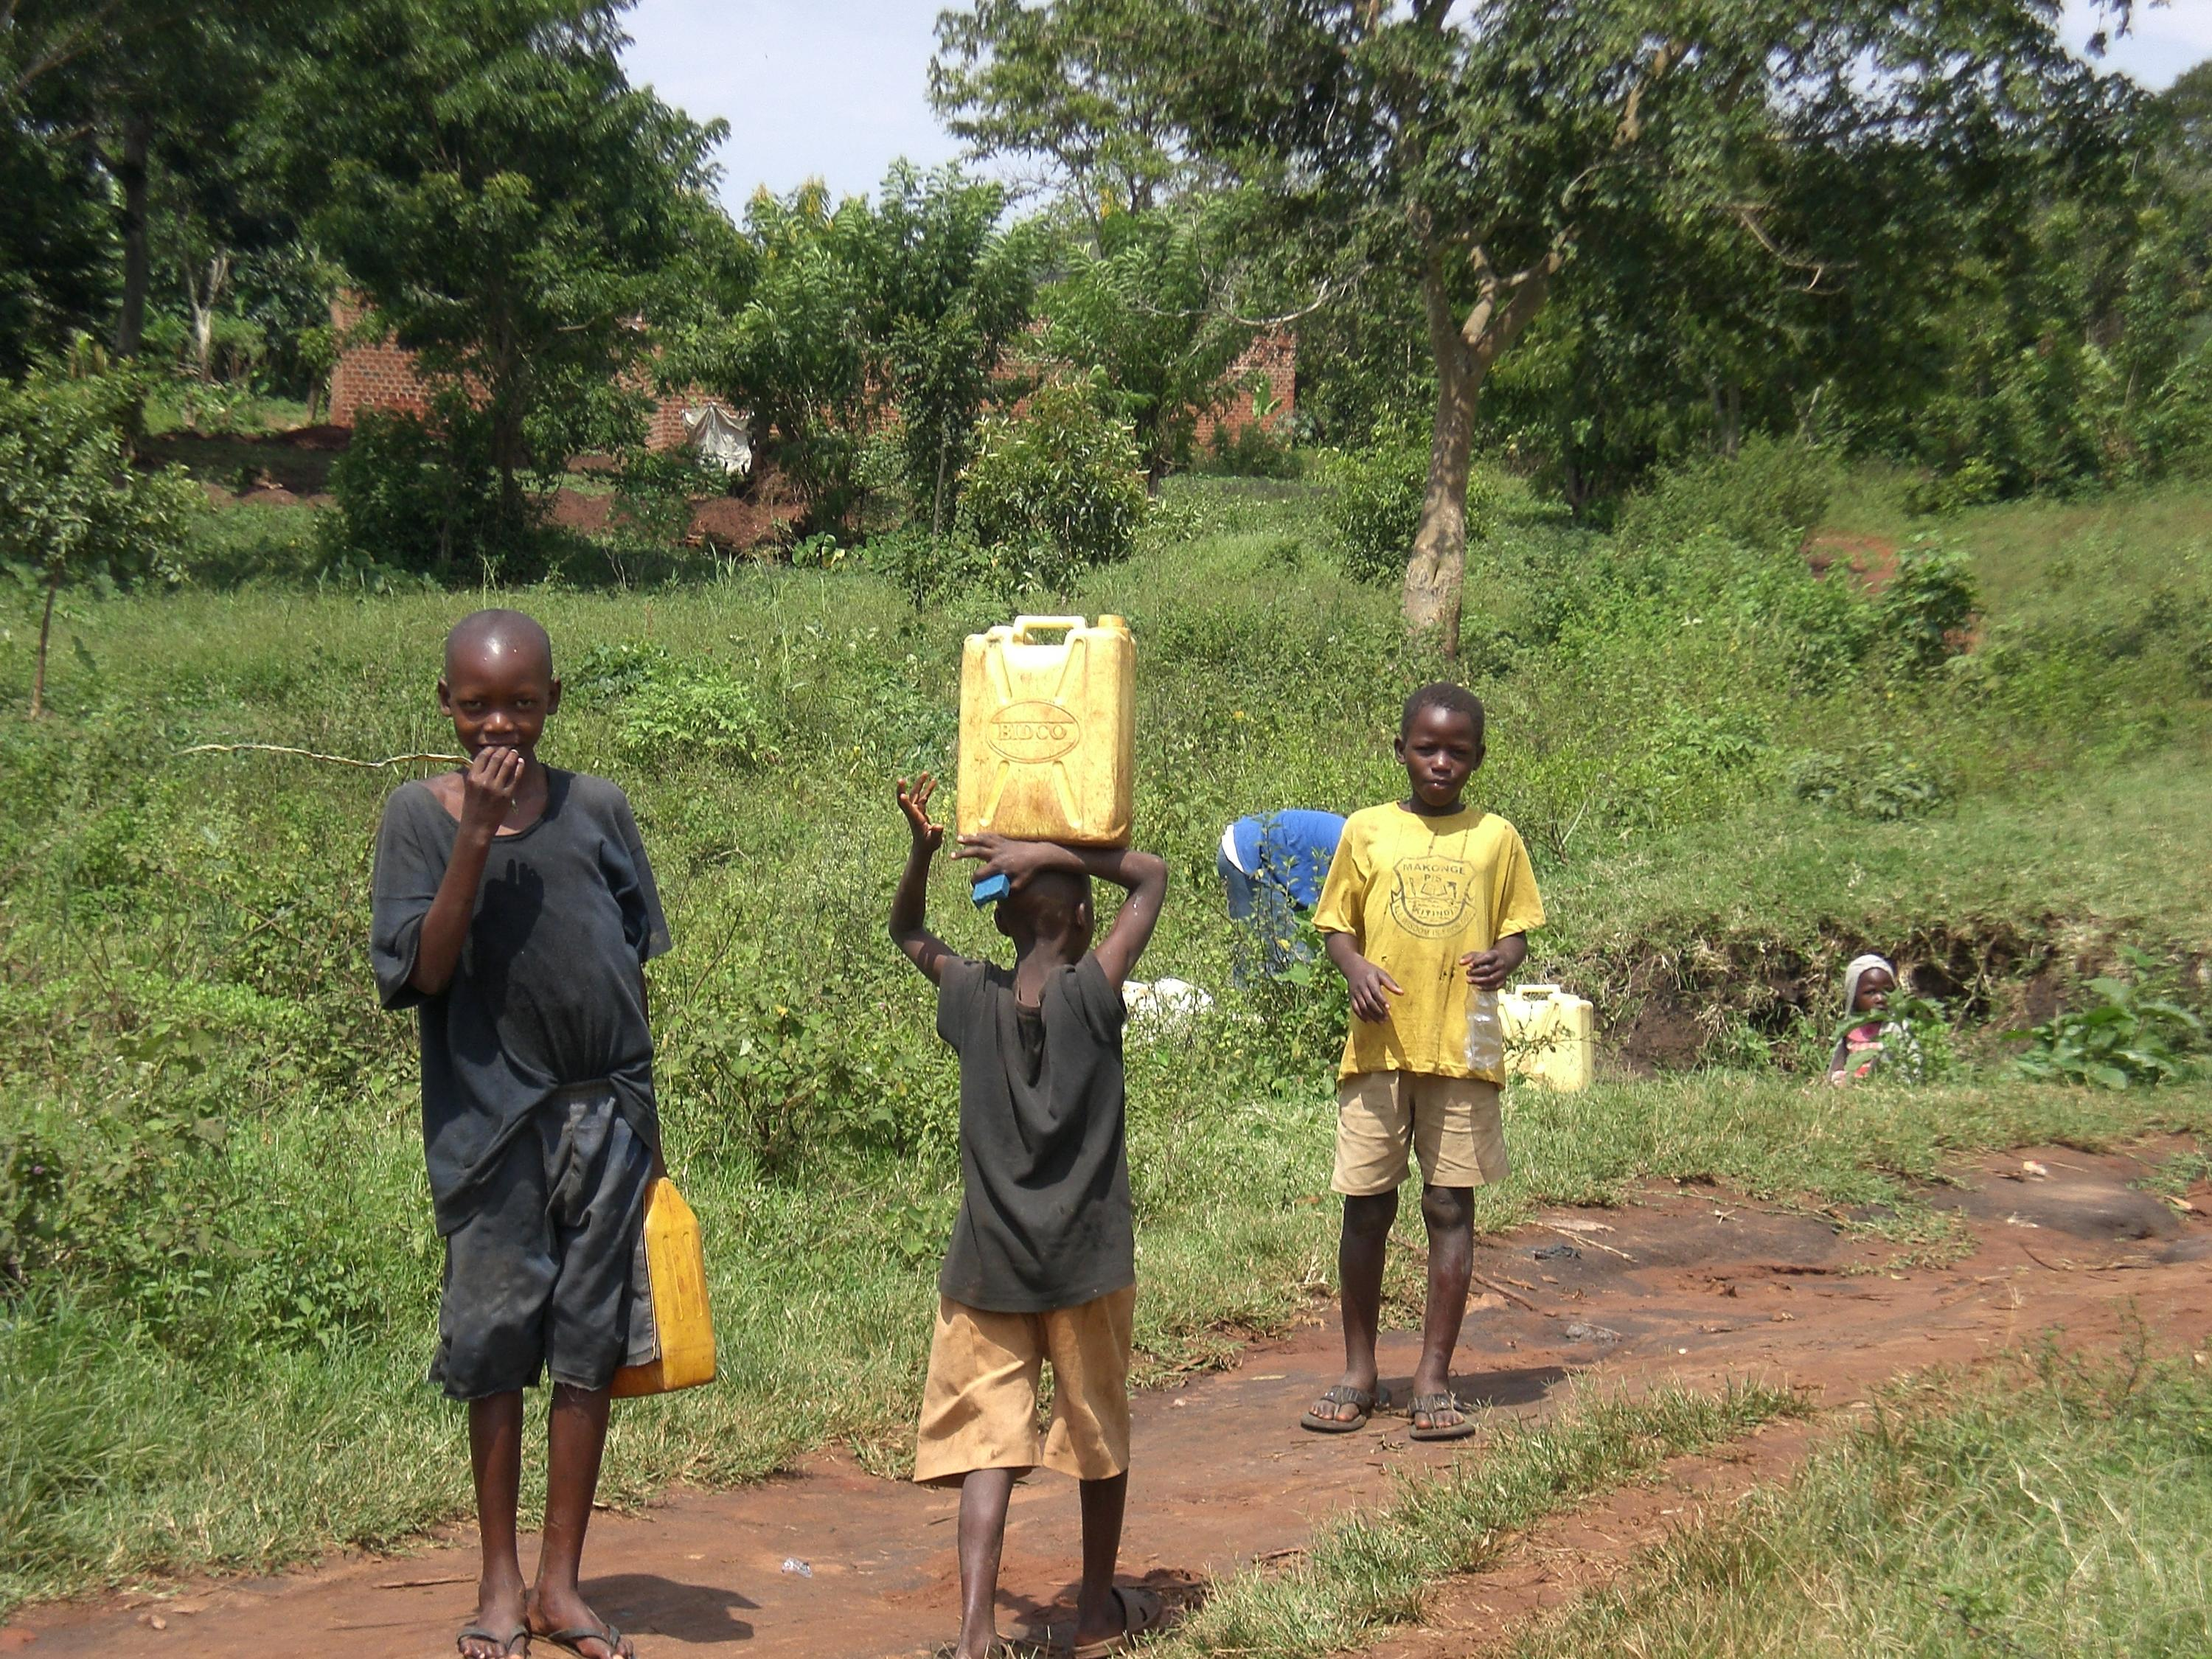 African children carrying water in Africa